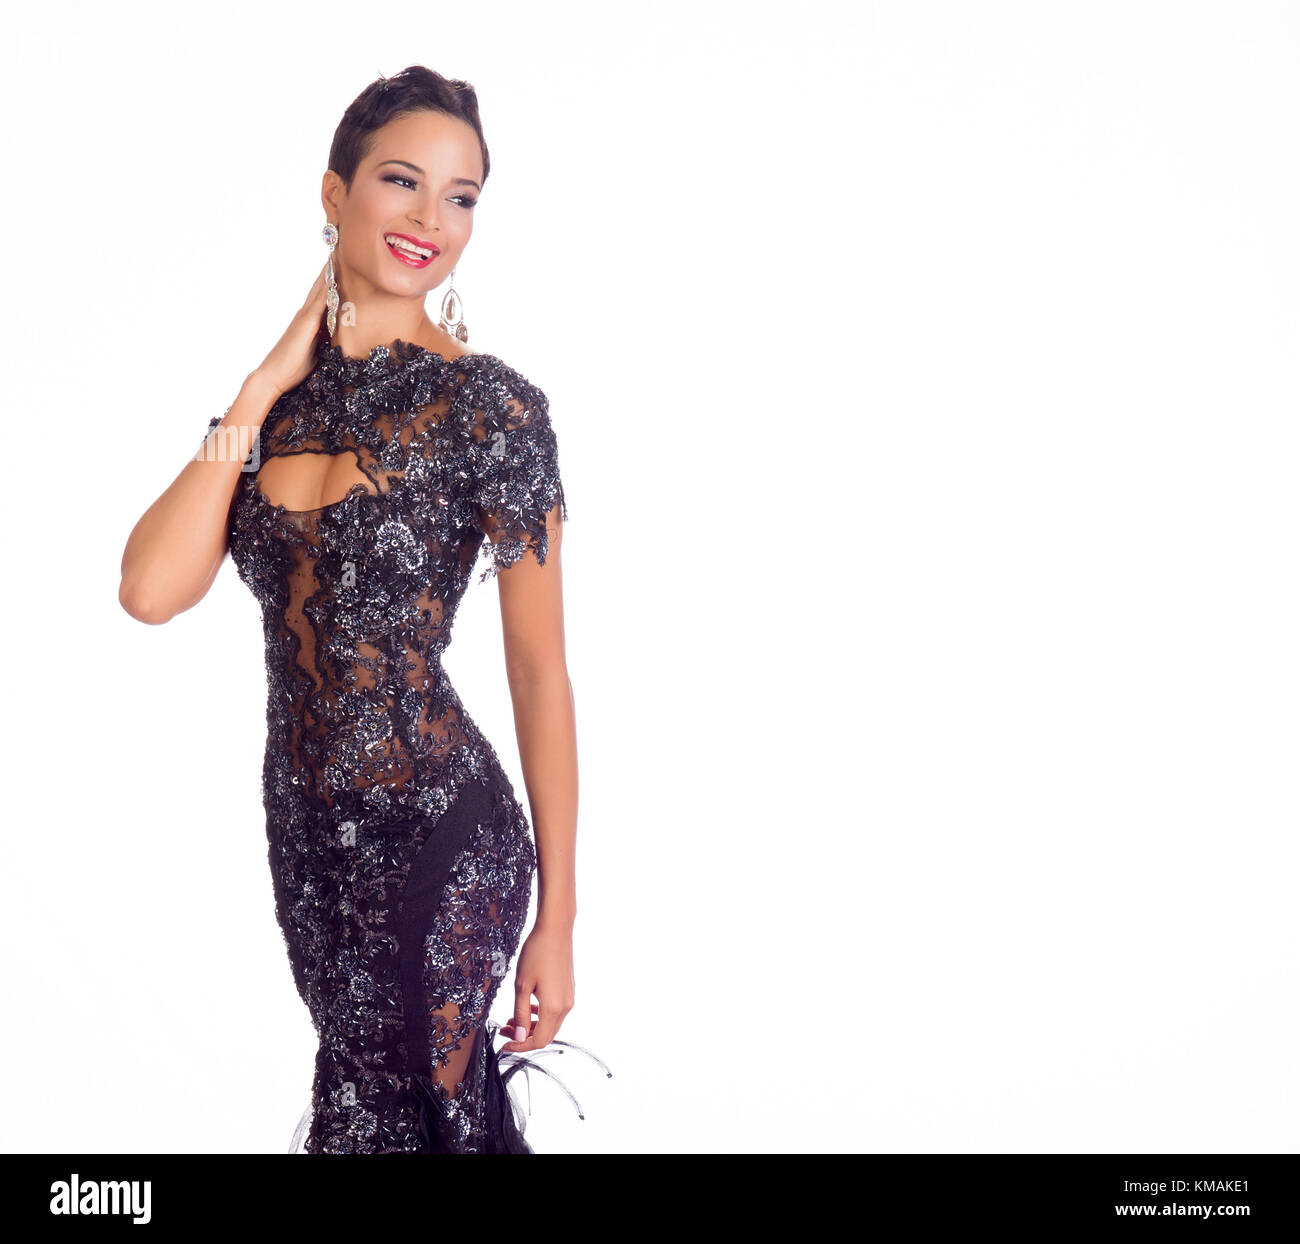 DORAL, FL - JANUARY 23: Kaci Fennell, Miss Jamaica 2014 poses is her evening gown for The 63rd Annual MISS UNIVERSE - Stock Image